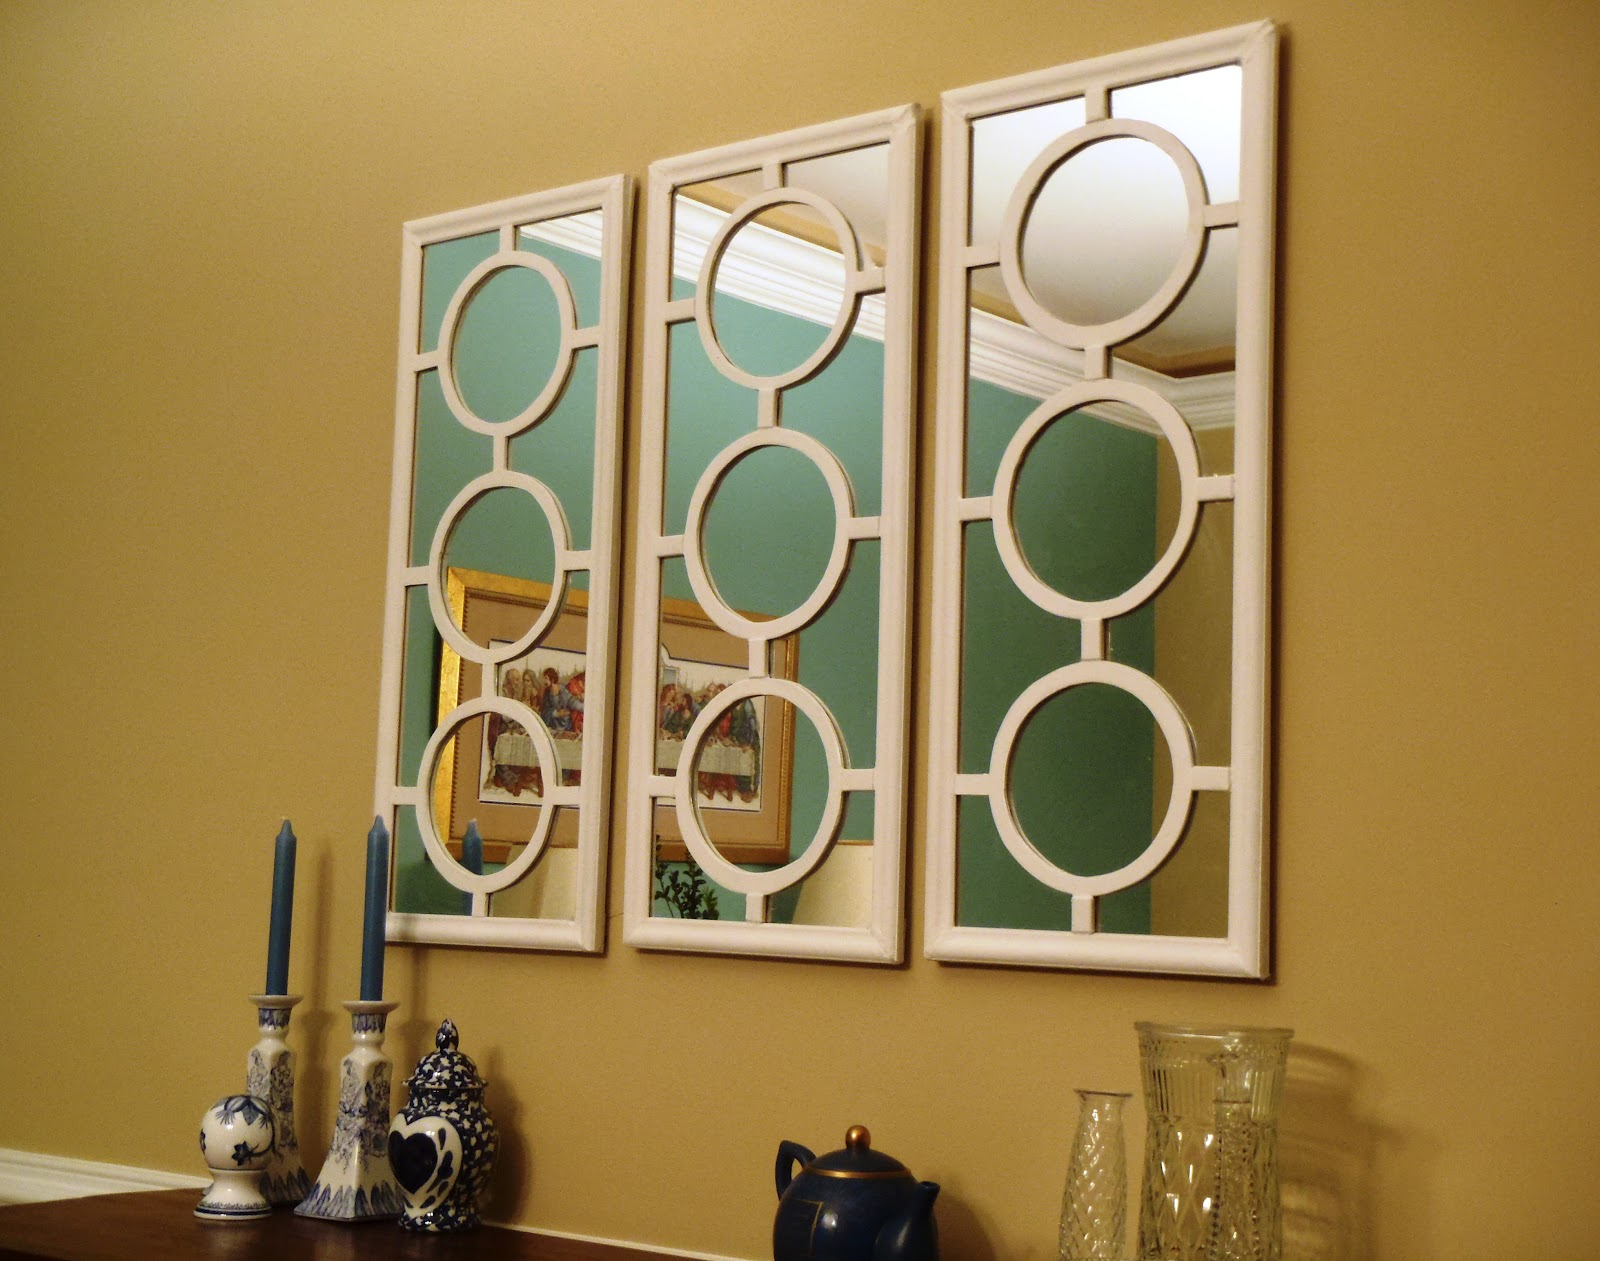 Unique Wall Mirrors Decor Lazy Liz On Less Dining Wall Mirror Decor